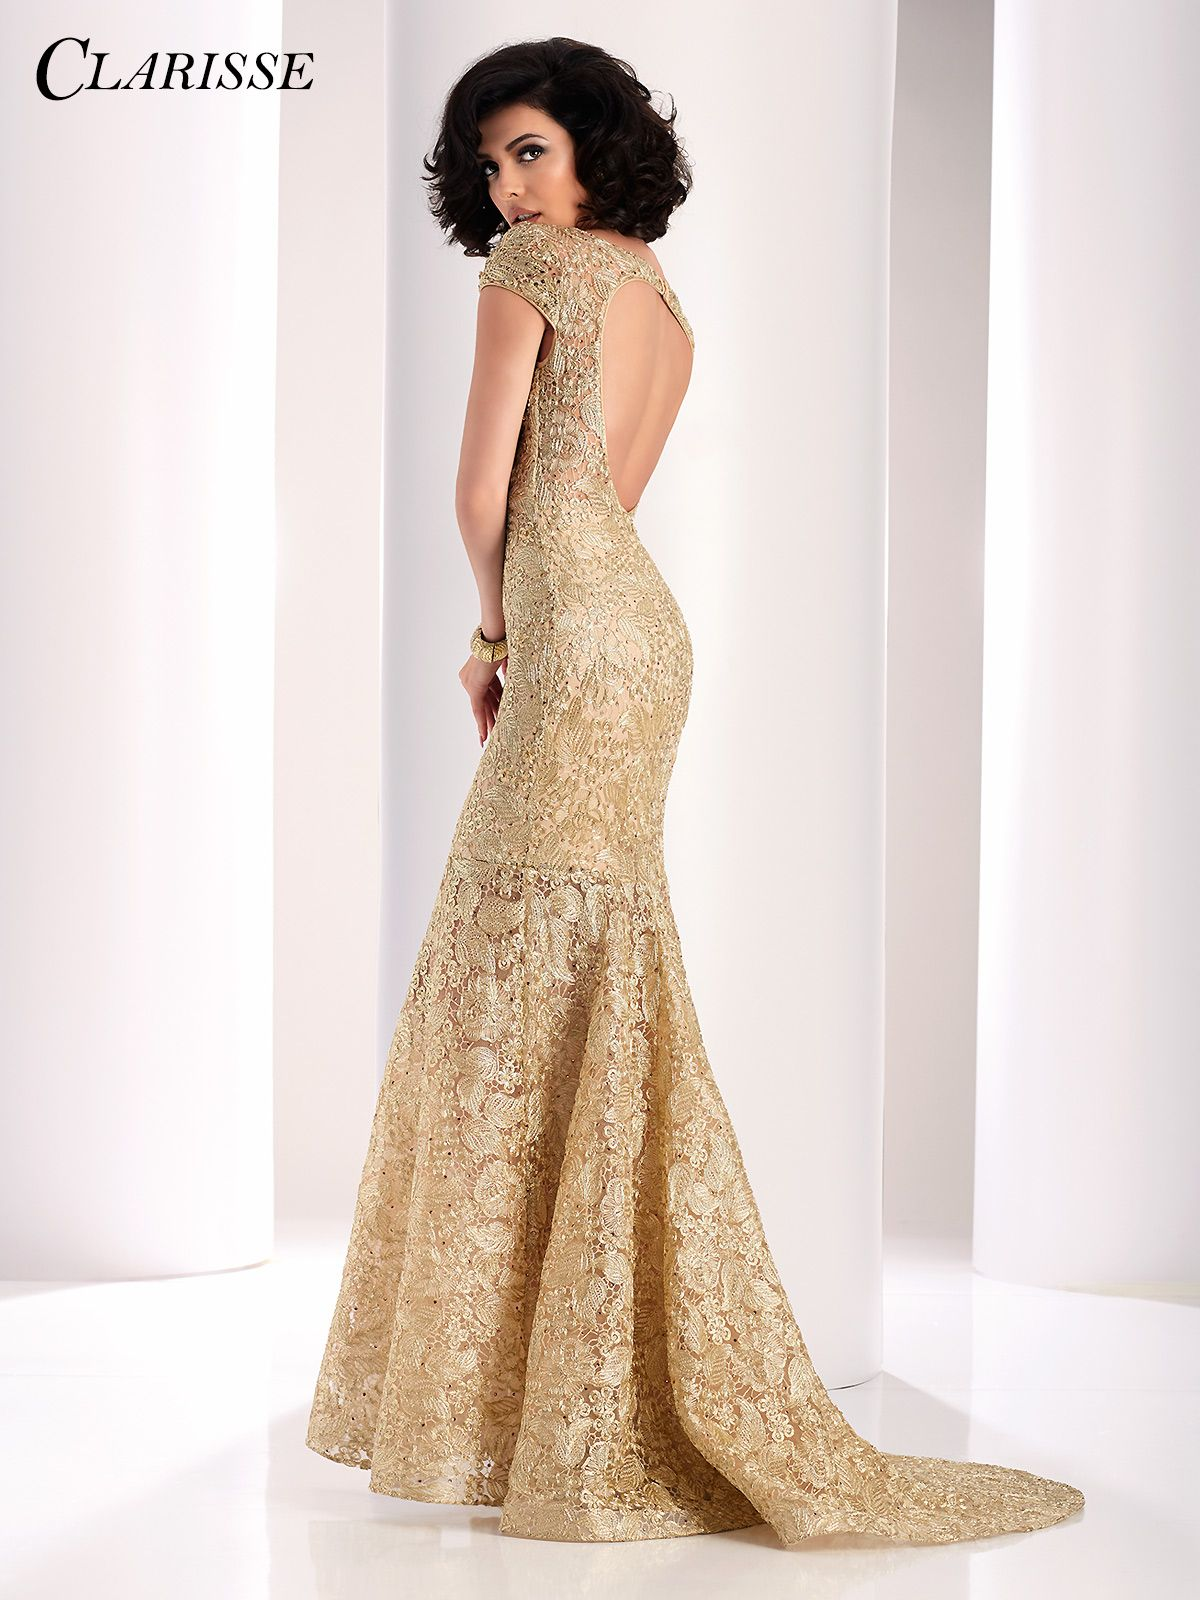 Clarisse Gold Lace Mermaid Evening Gown 4852 | Mermaid evening ...